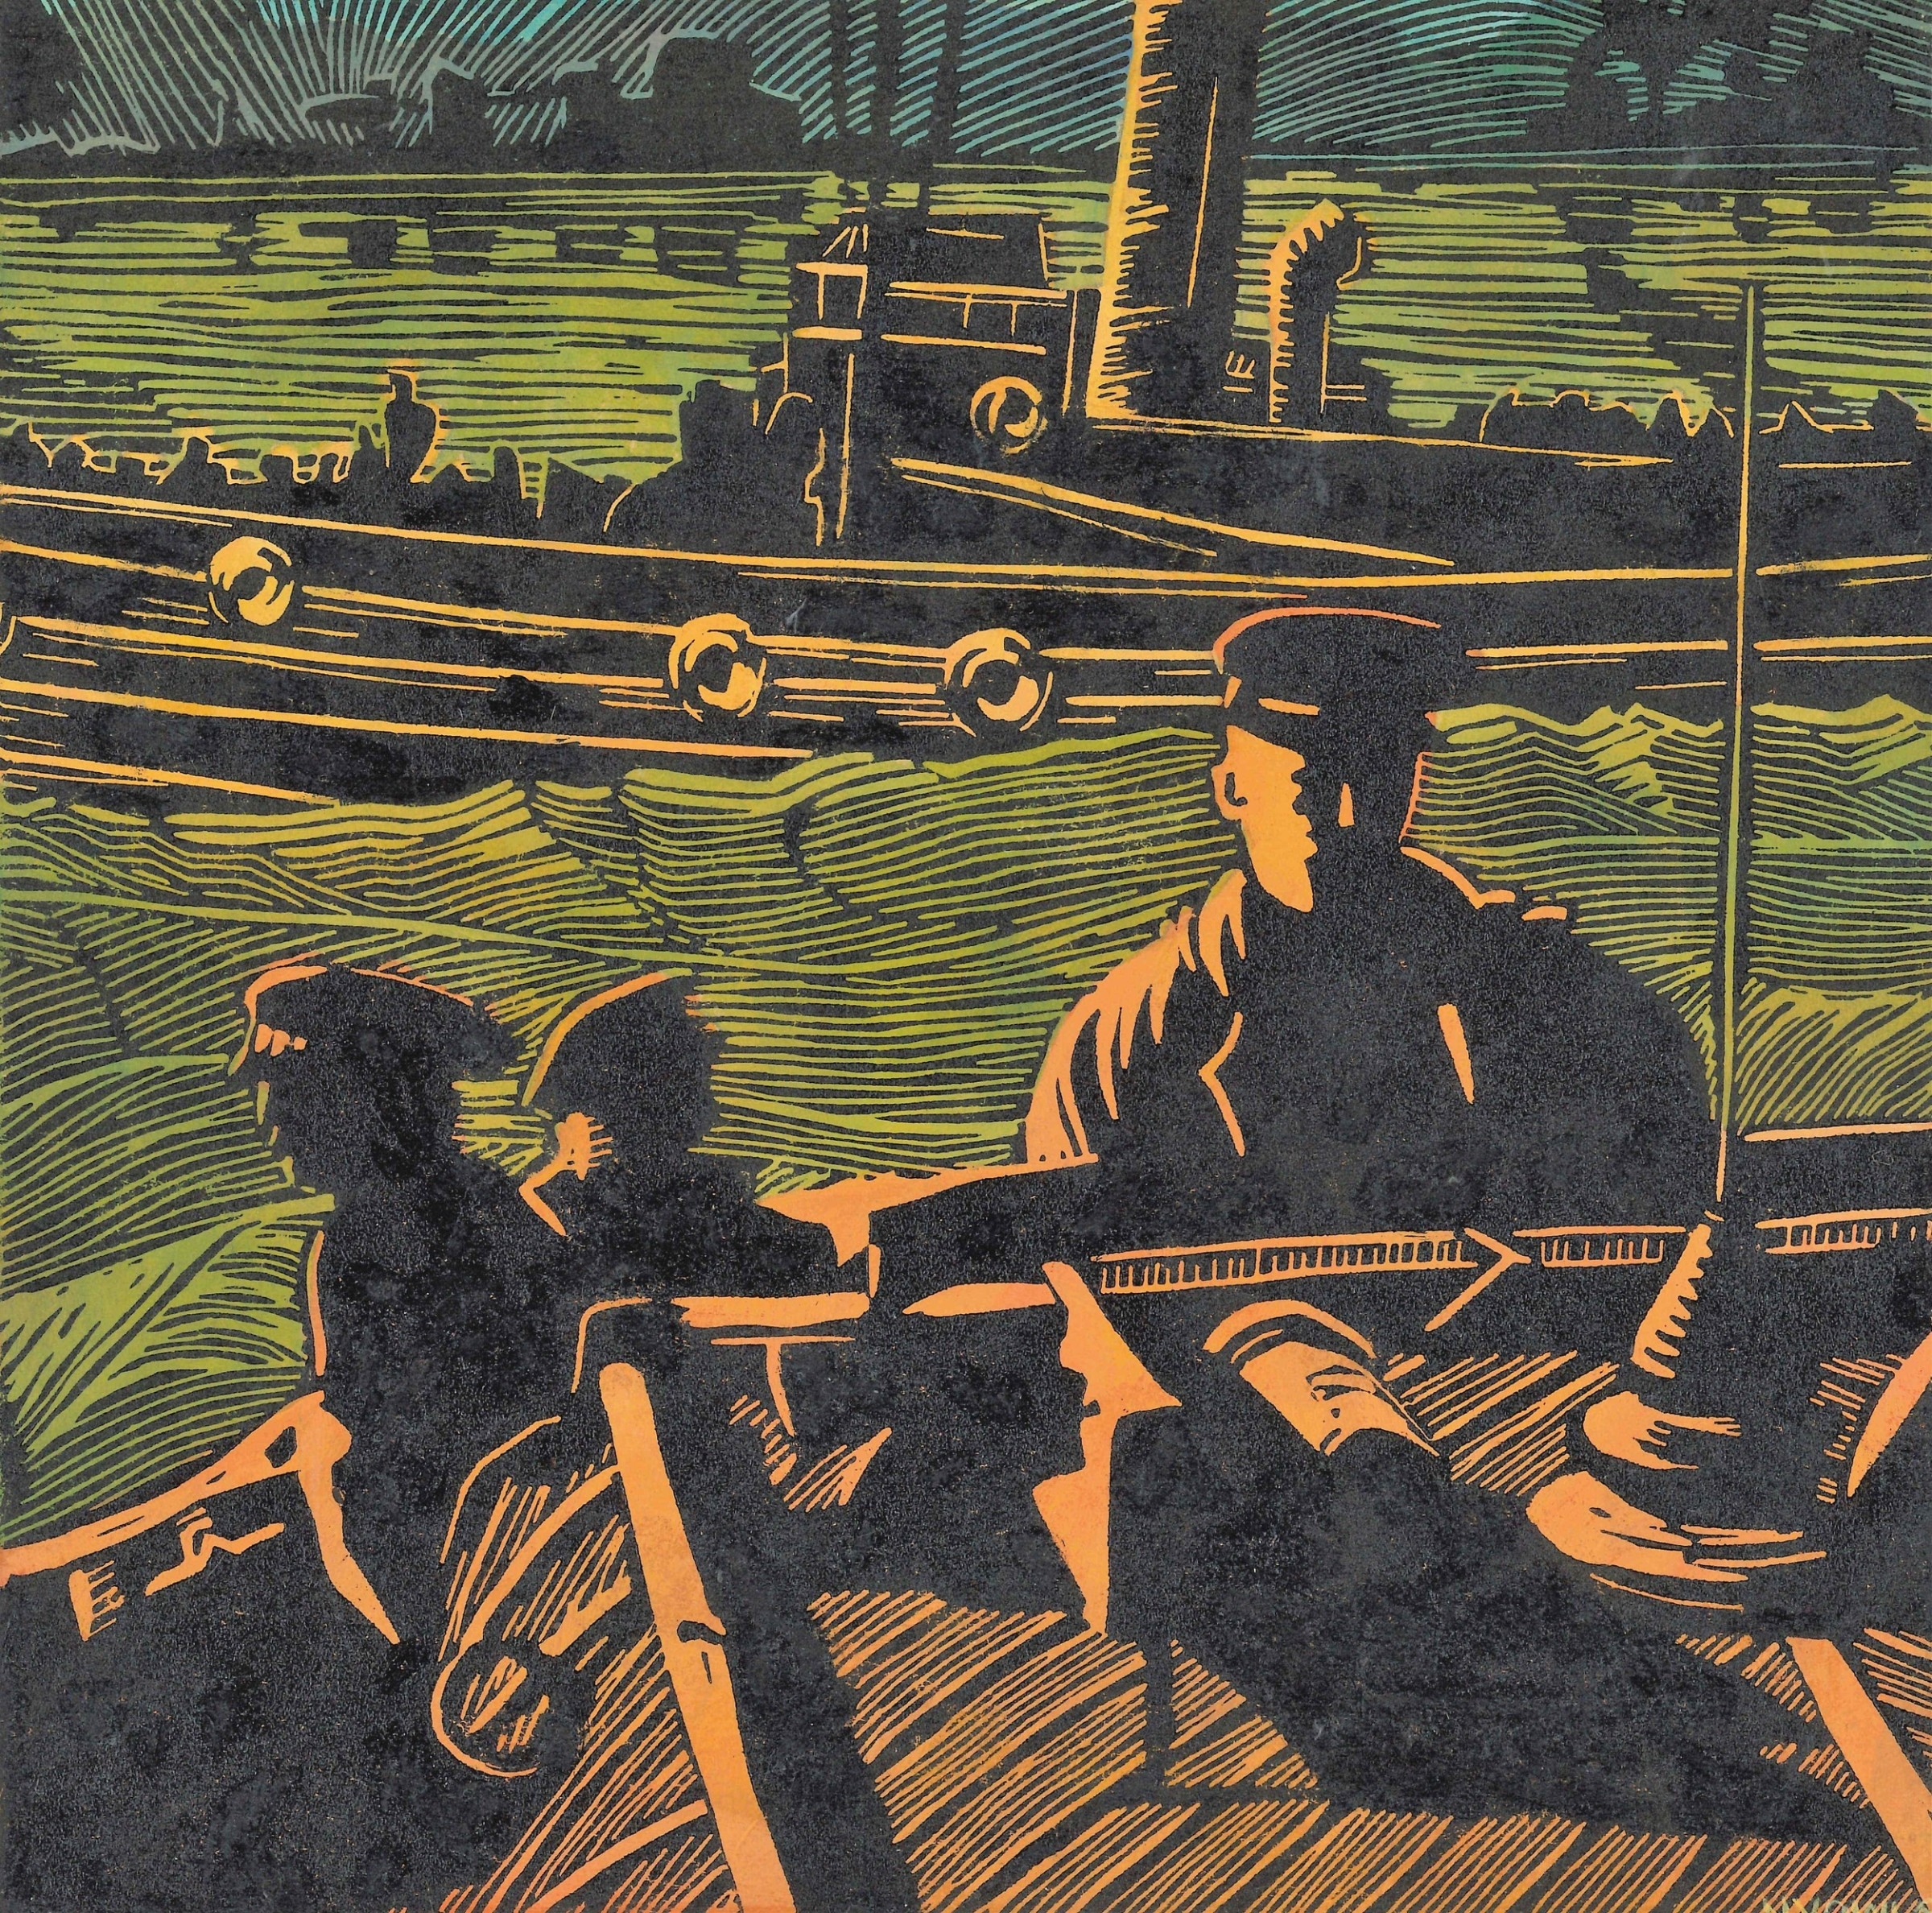 "<span class=""link fancybox-details-link""><a href=""/exhibitions/18/works/image_standalone1063/"">View Detail Page</a></span><p>Nicki Vowls</p><p>They Saved the Men</p><p>linocut on board</p><p>26 x 26cm</p><p>£280</p>"